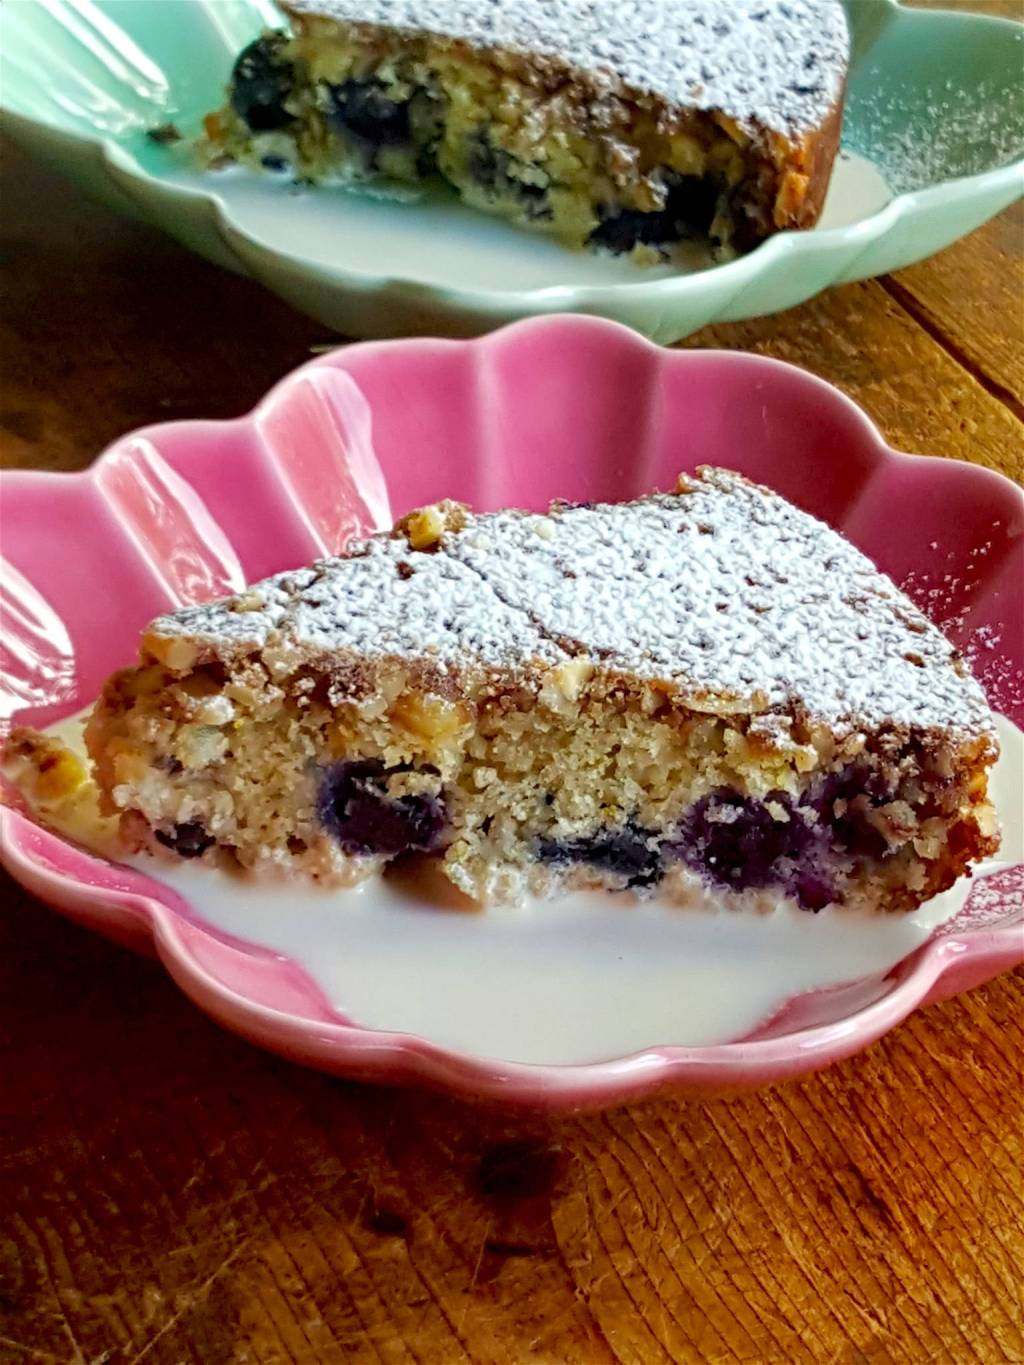 Blueberry Muffin Cake